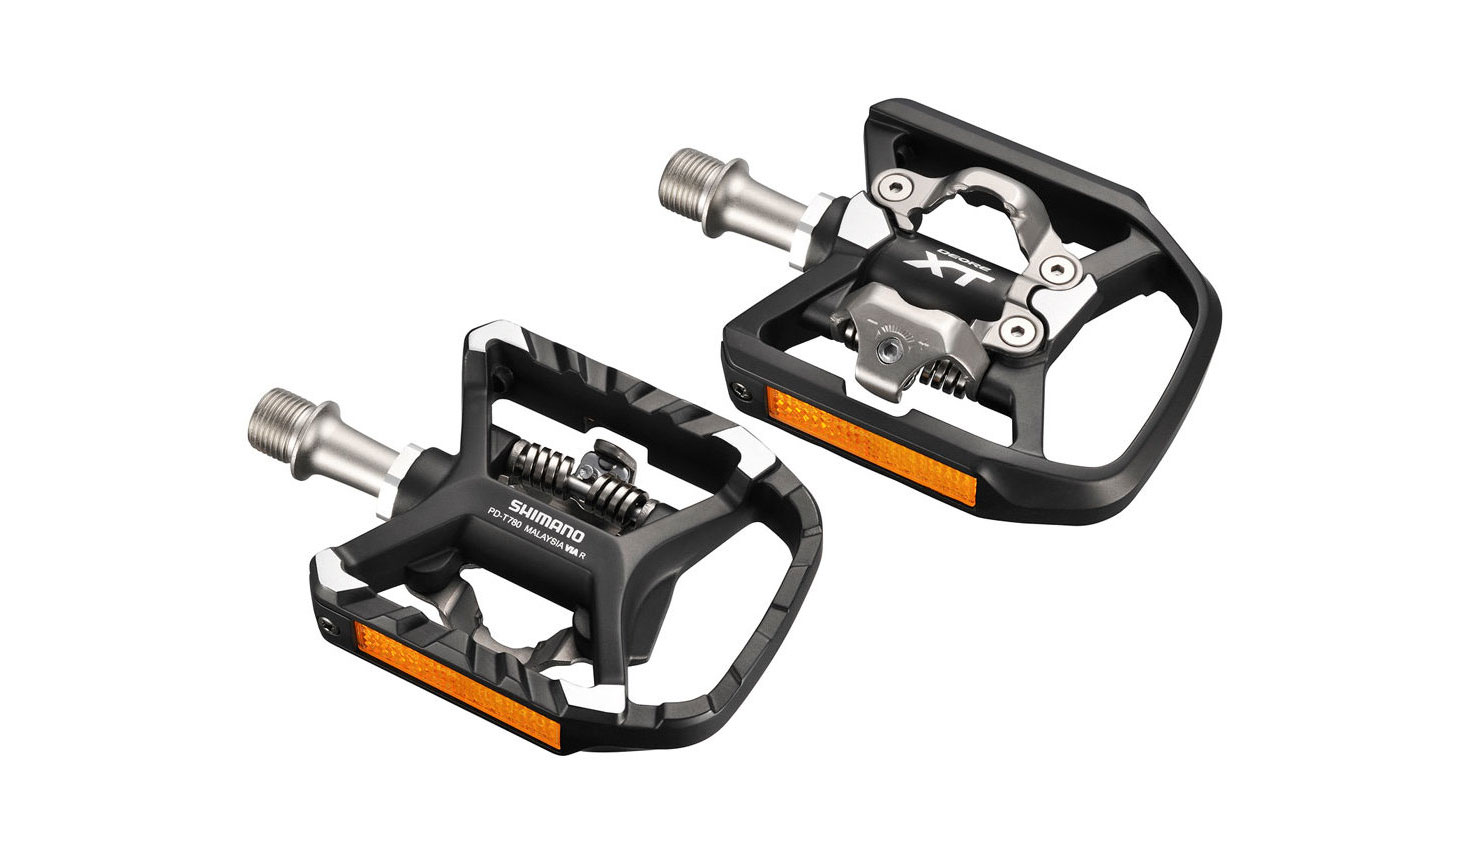 Shimano XT multi-purpose